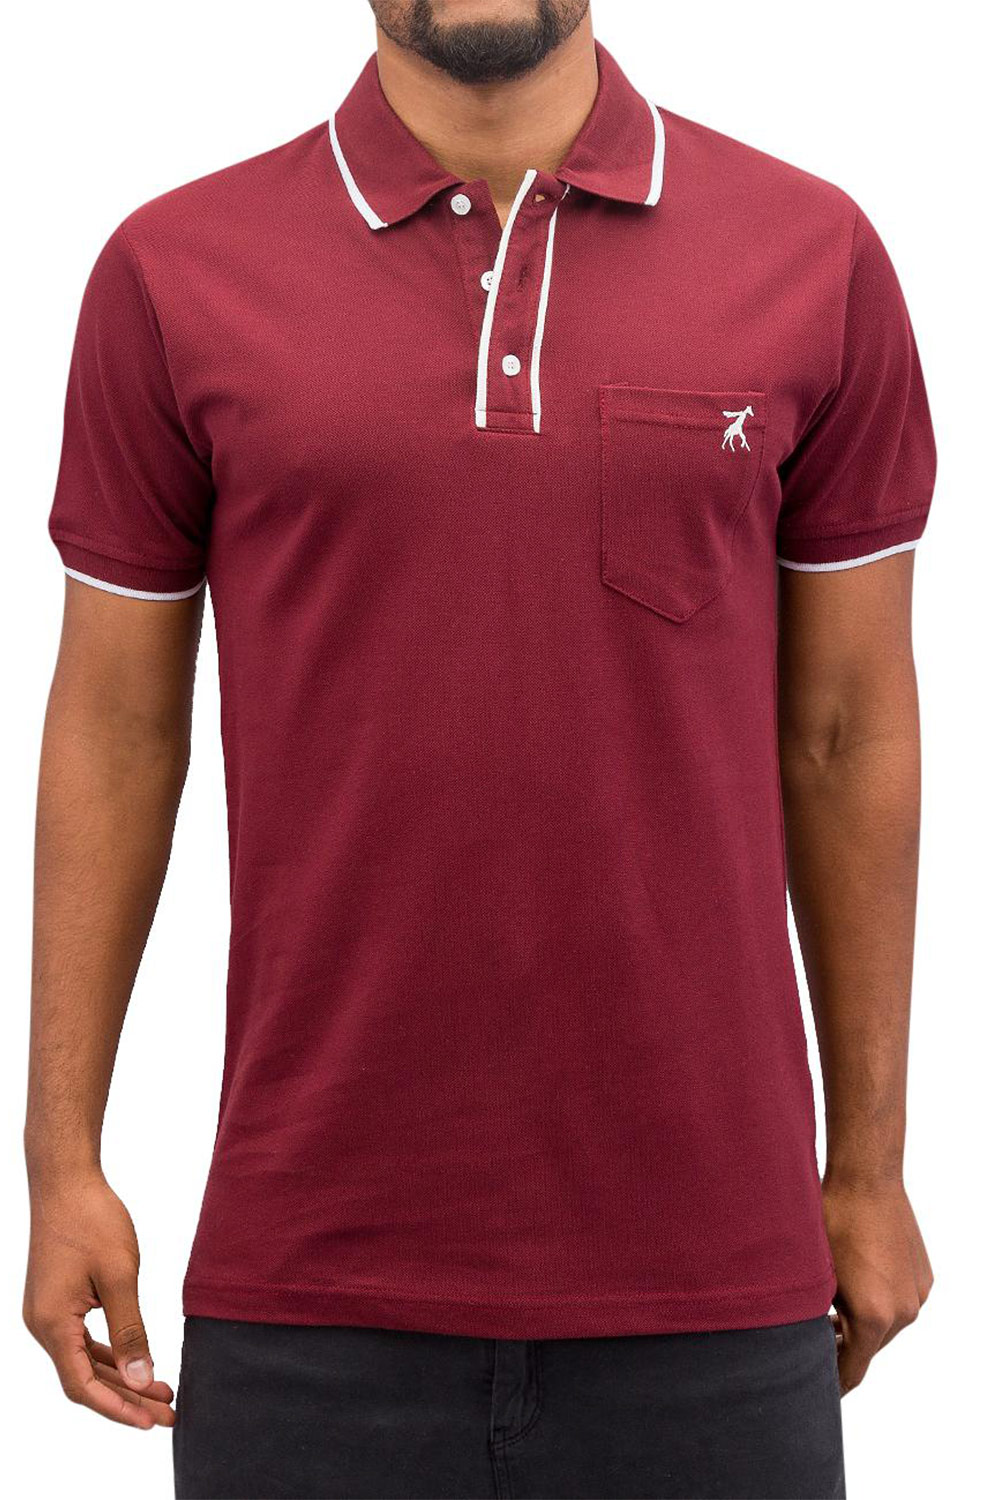 CAZZY CLANG Damp II Polo Shirt Red auf oboy.de